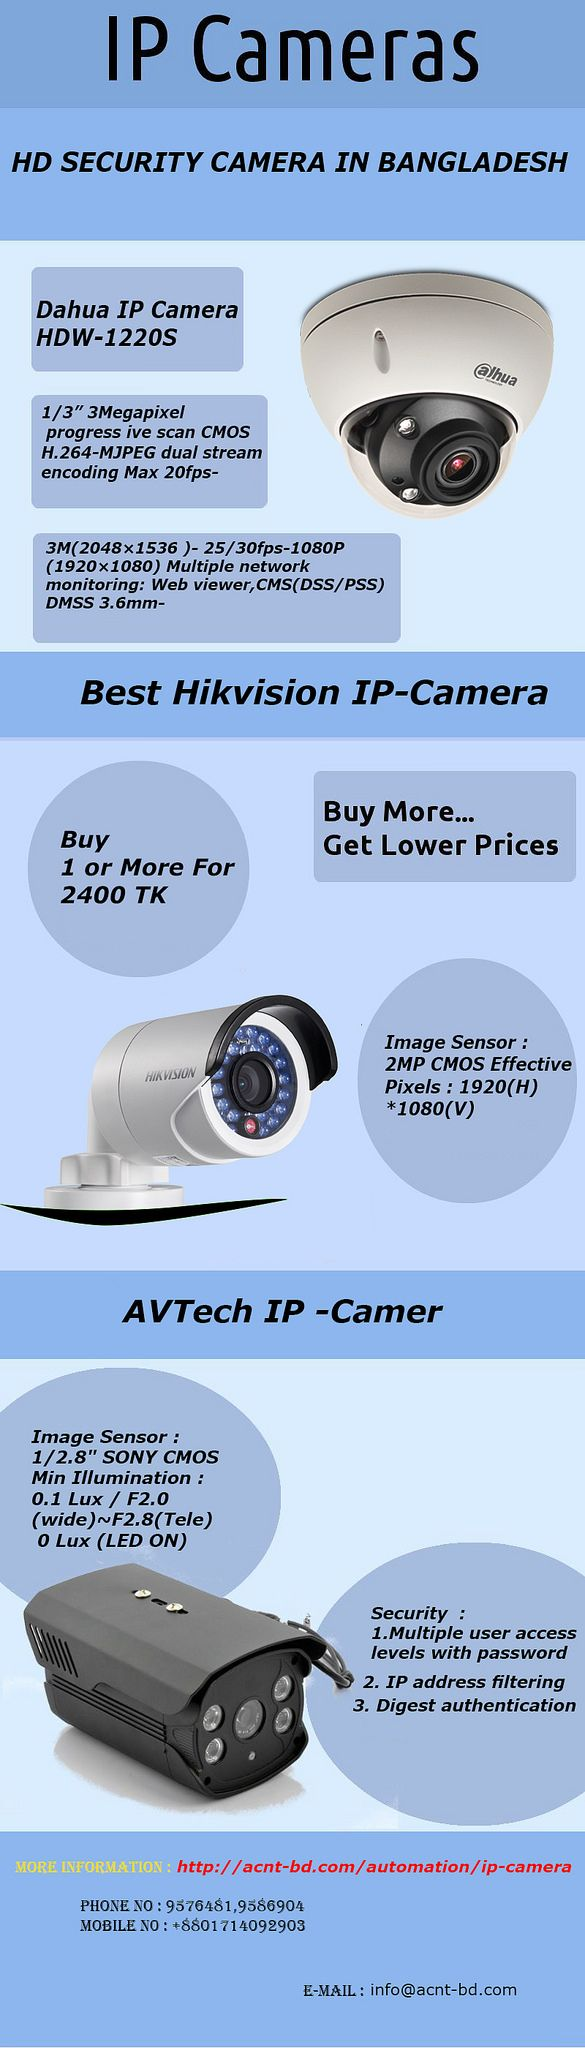 https://flic.kr/p/T9f9ya | Latest IP Camera Price in Bangladesh at acnt-bd.com | Acnt-bd.com is providing the best ip camera price in Bangladesh offering dahua, jovision ip camera in Dhaka, Bangladesh.